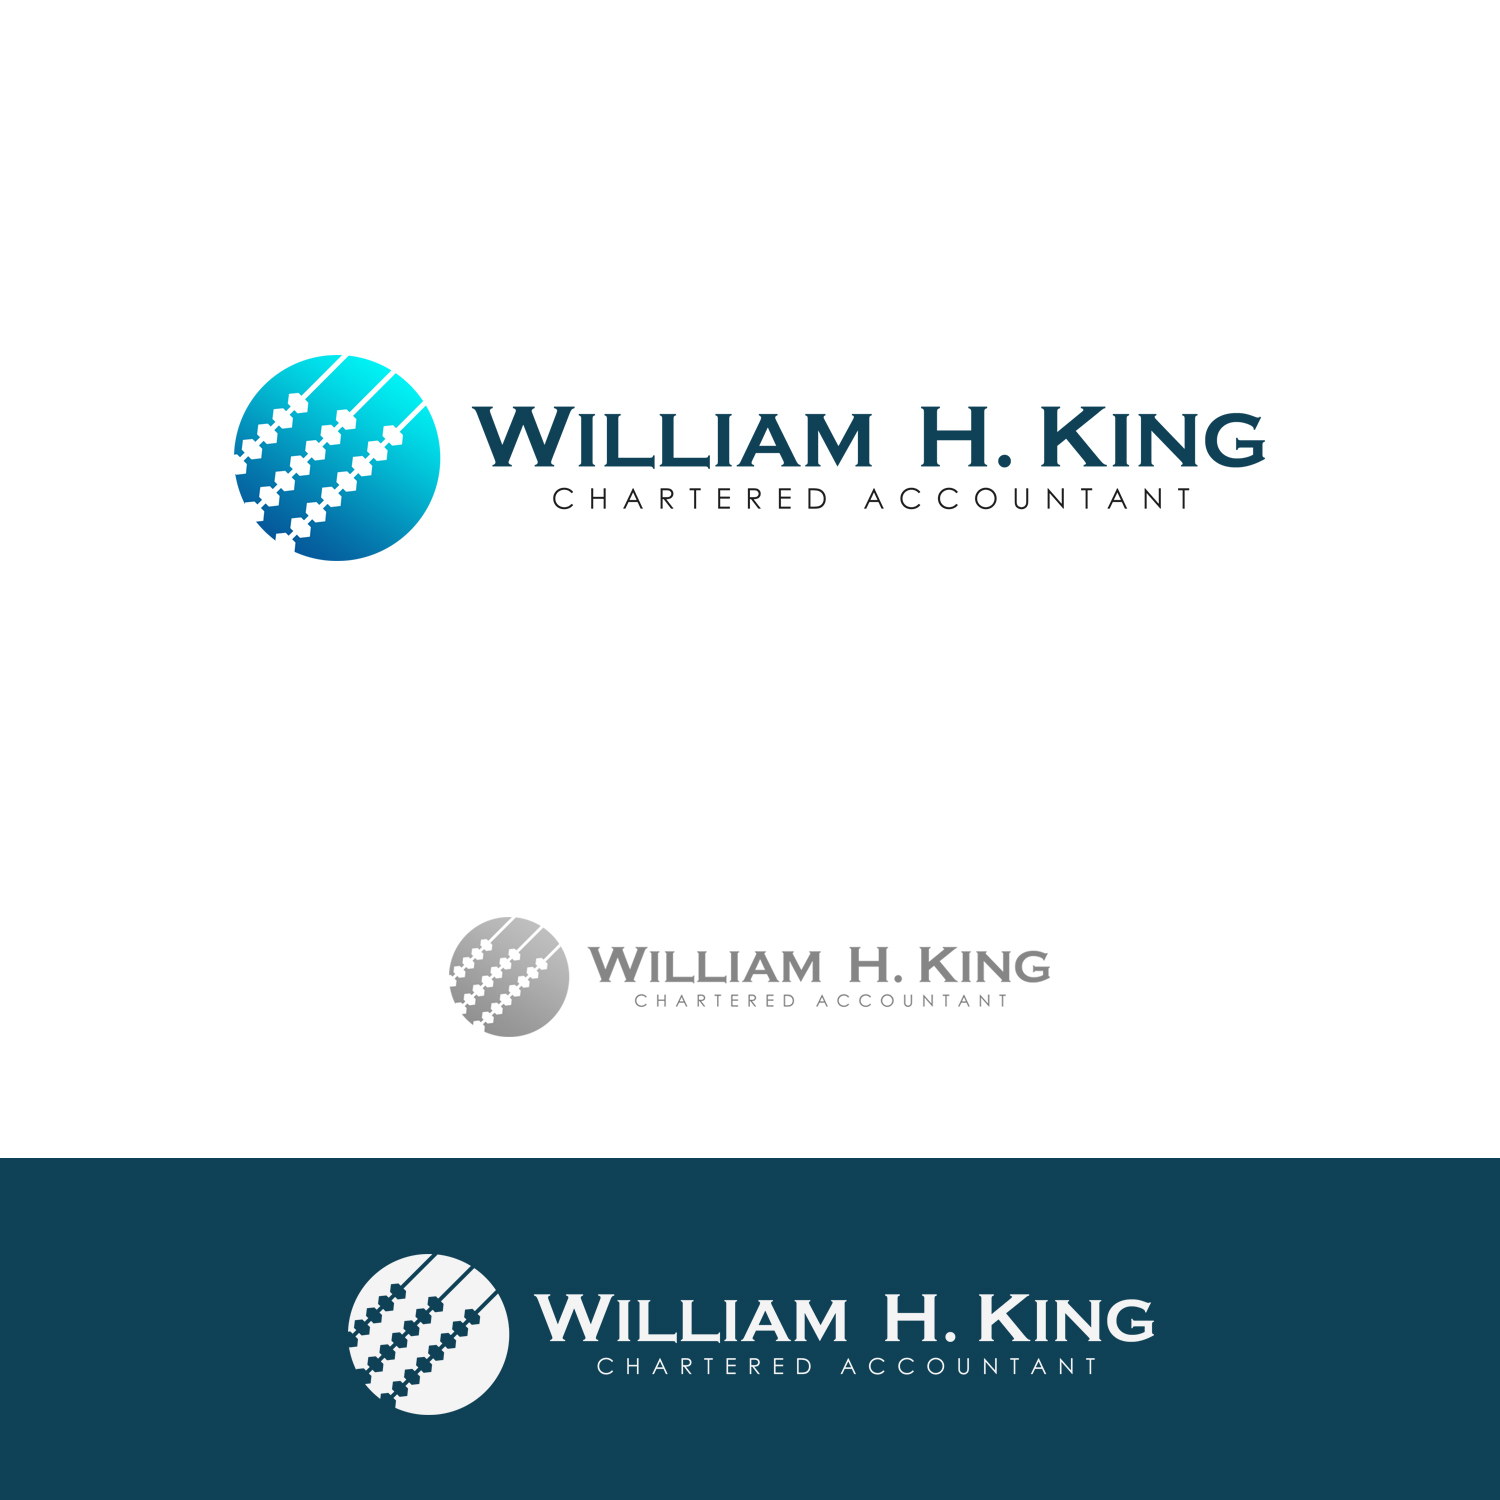 Accounting logos free images for Consulting company logo